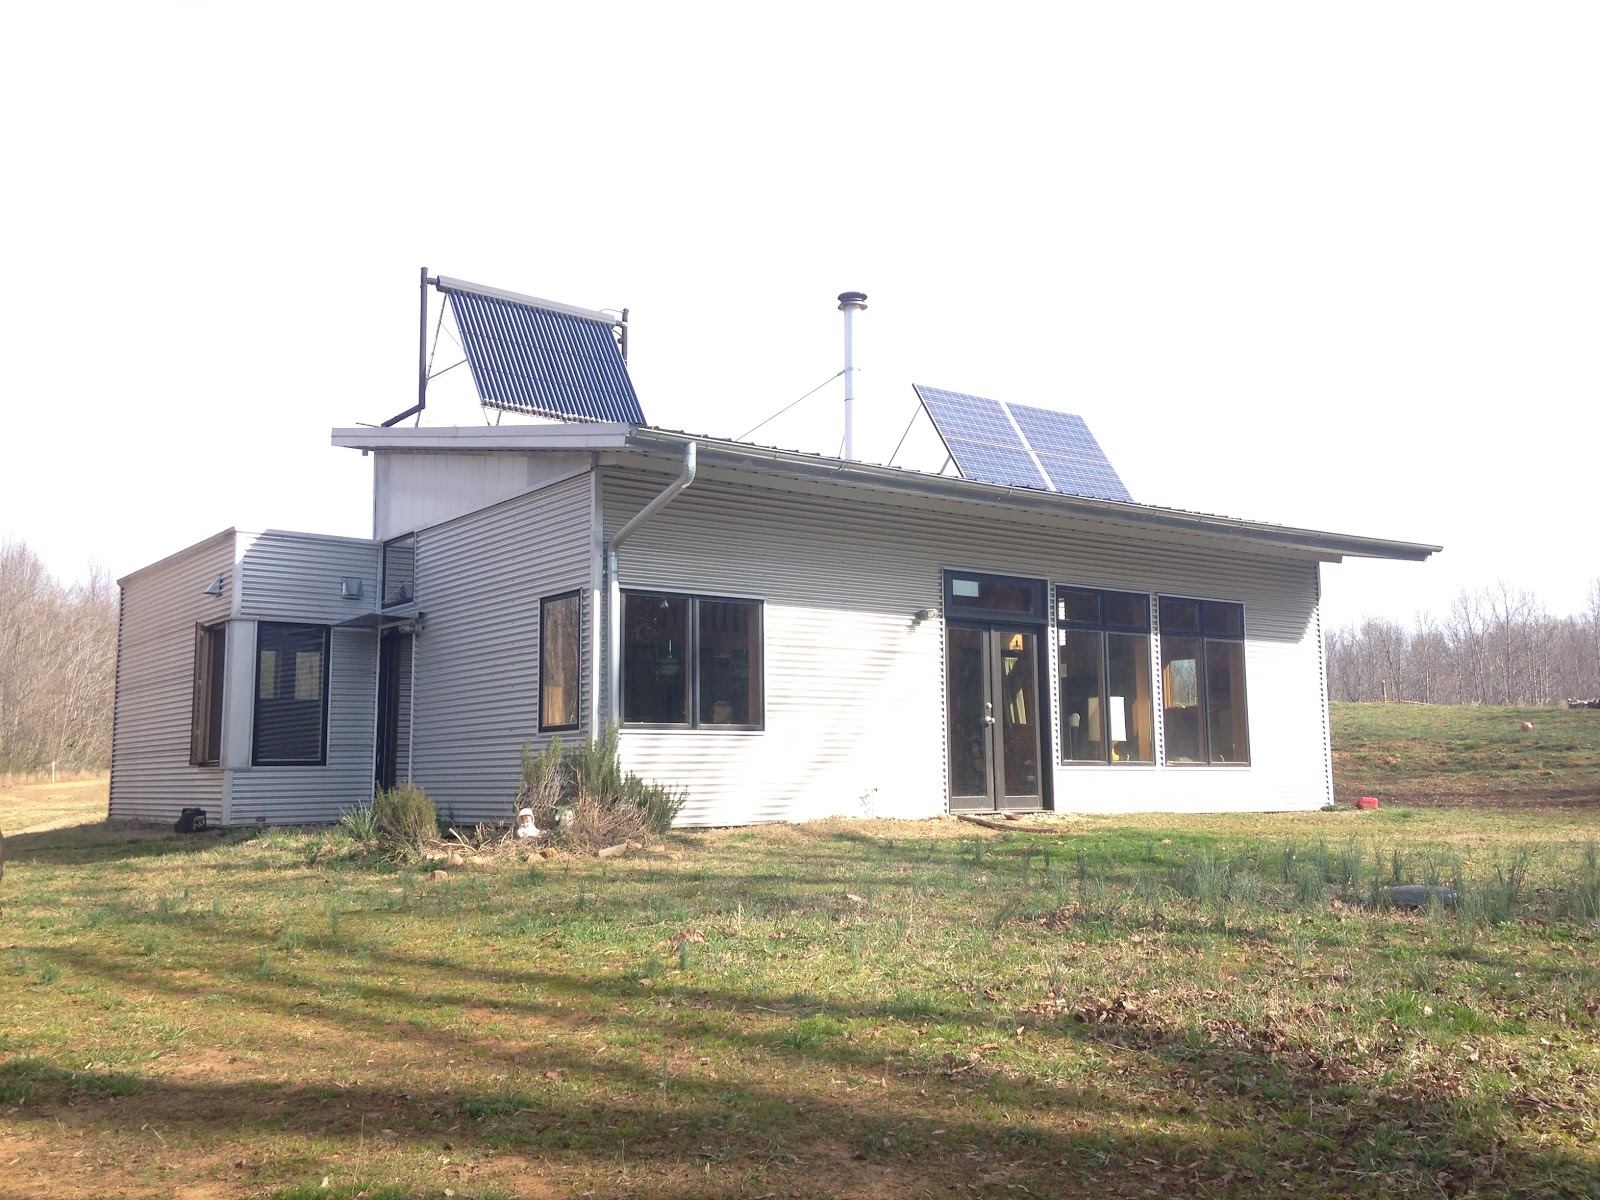 Off The Grid Prefab Homes Modern Prefab House Off Grid Thinks On Concrete Slabs Frugal And